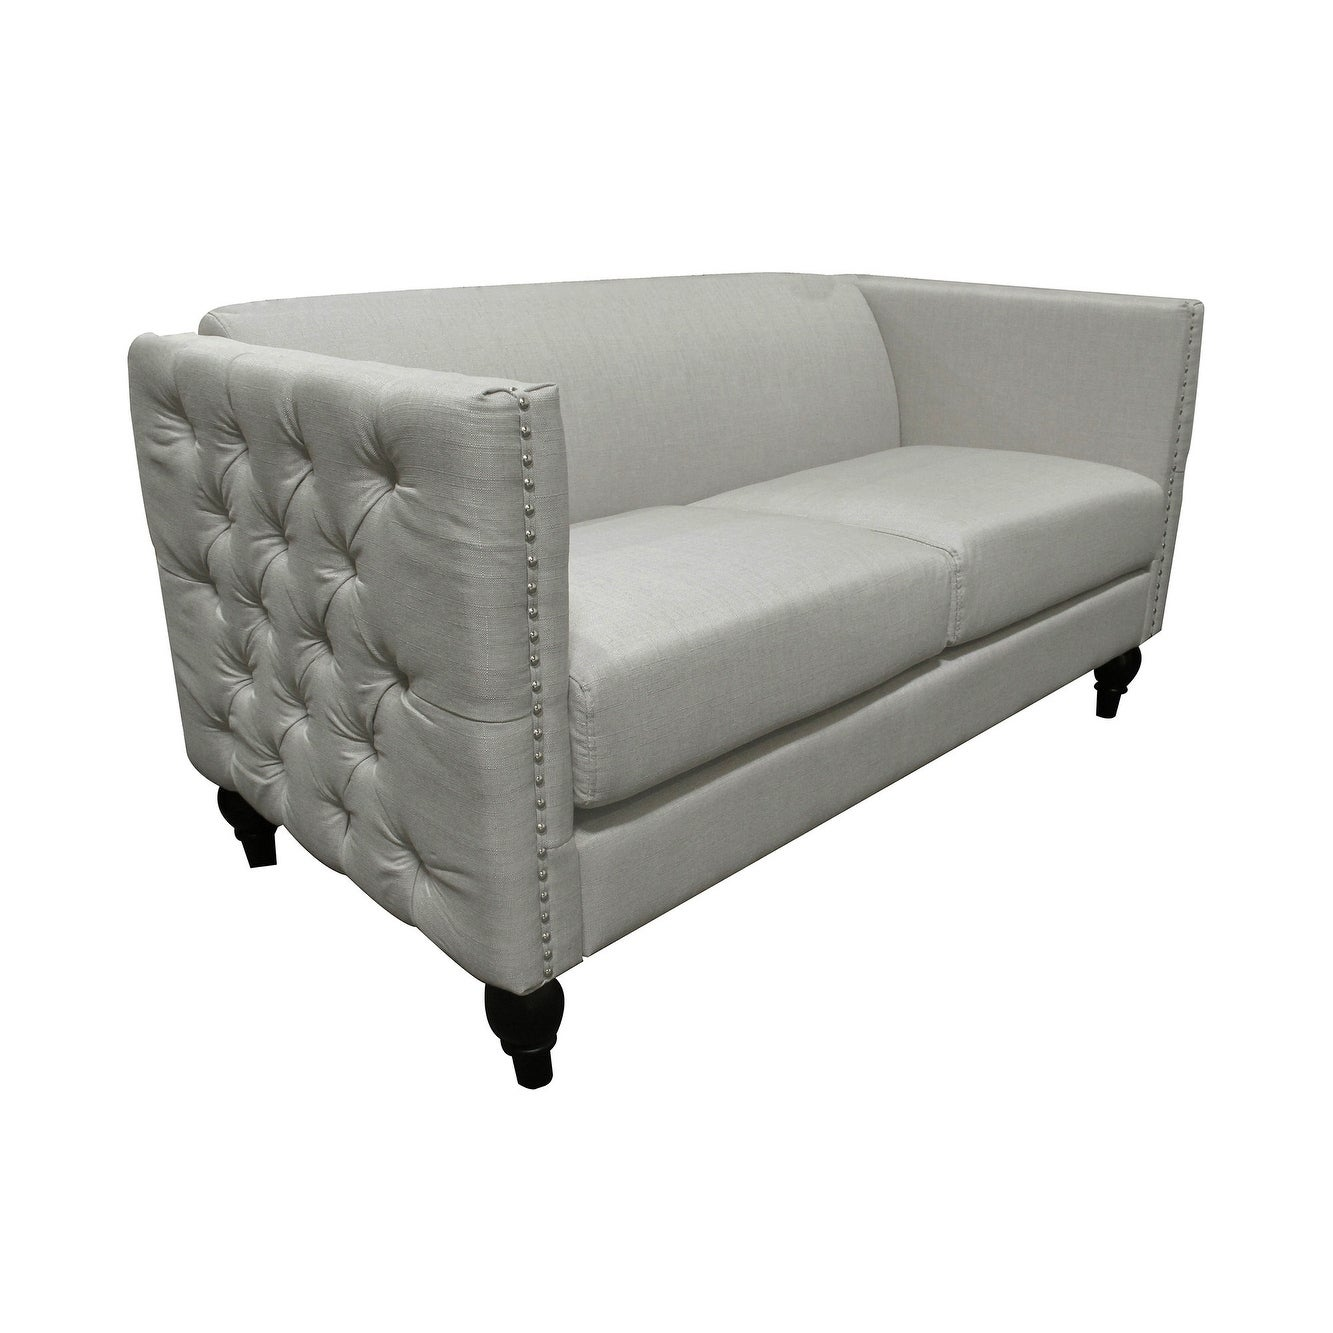 ef77c32c34a3 Shop Best Master Furniture 3 Pieces Tufted Living Room Set - Free Shipping  Today - Overstock - 20759535